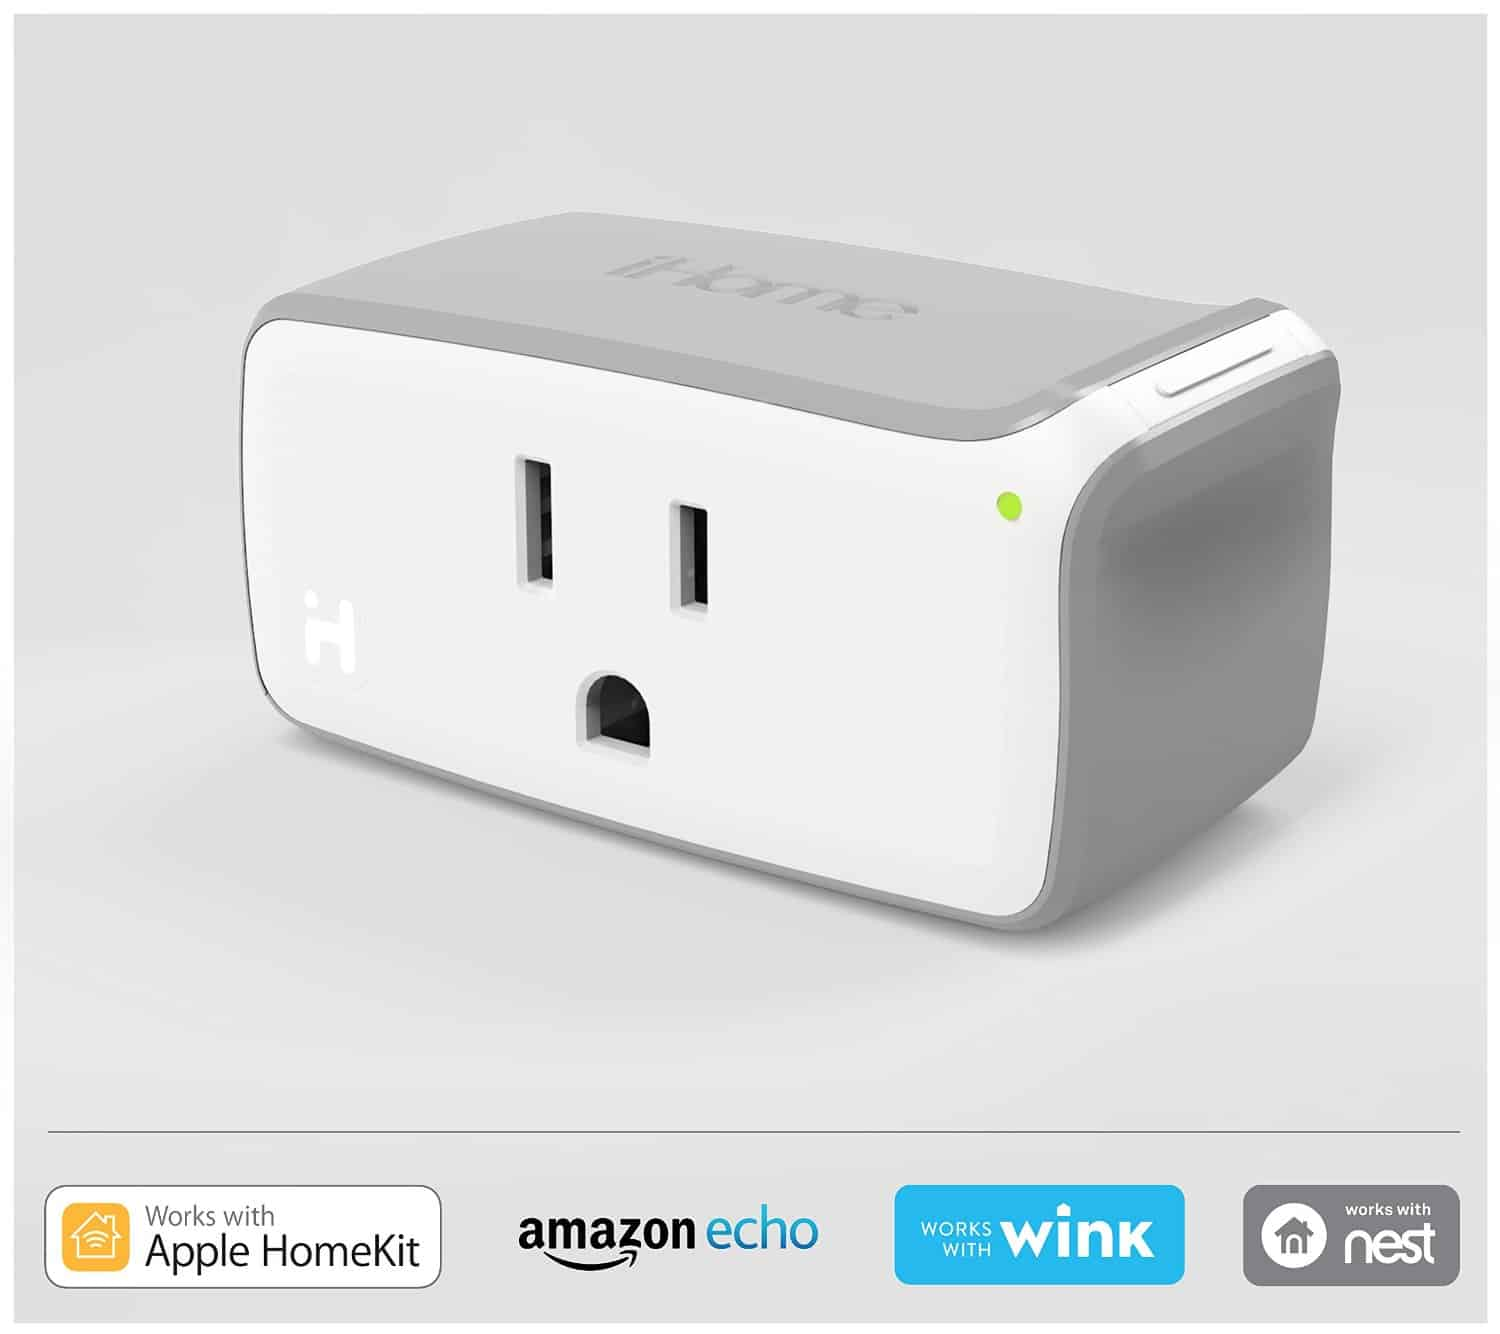 Swell Ihome Isp5 Wi Fi Smart Plug Reviews Coupons And Deals Download Free Architecture Designs Rallybritishbridgeorg